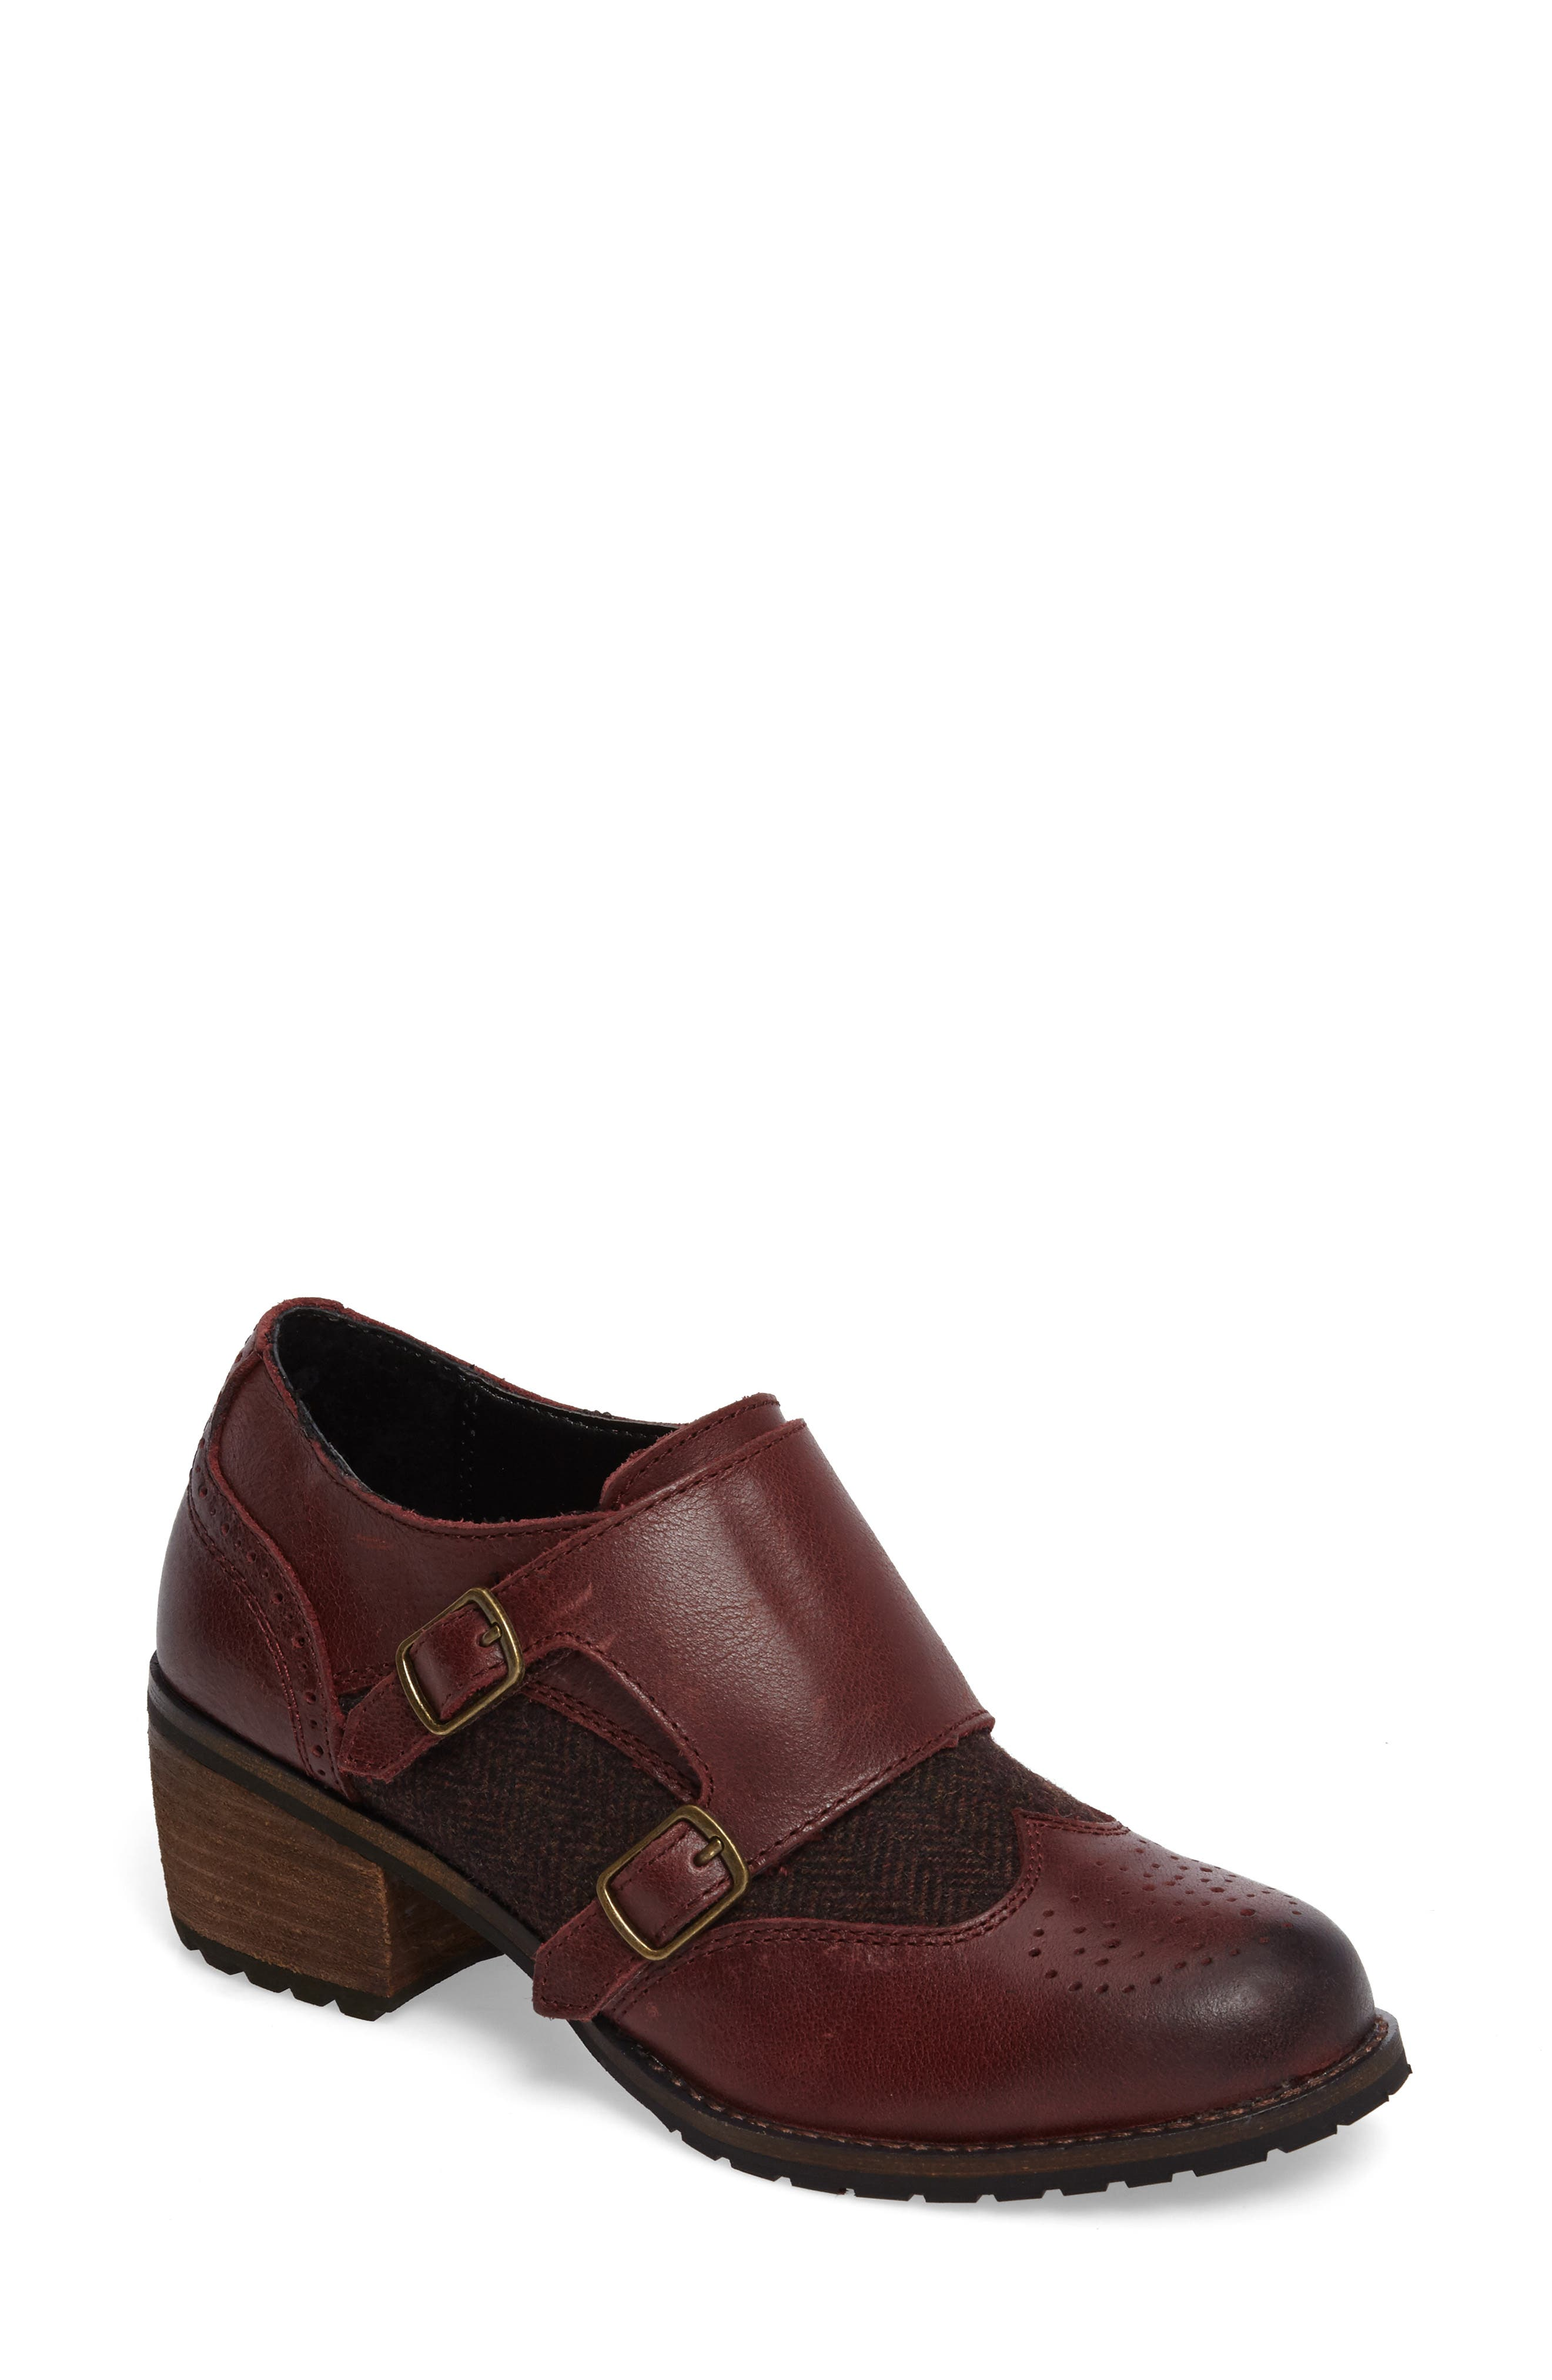 Dina Double Monk Strap Ankle Boot,                             Main thumbnail 1, color,                             Merlot Leather